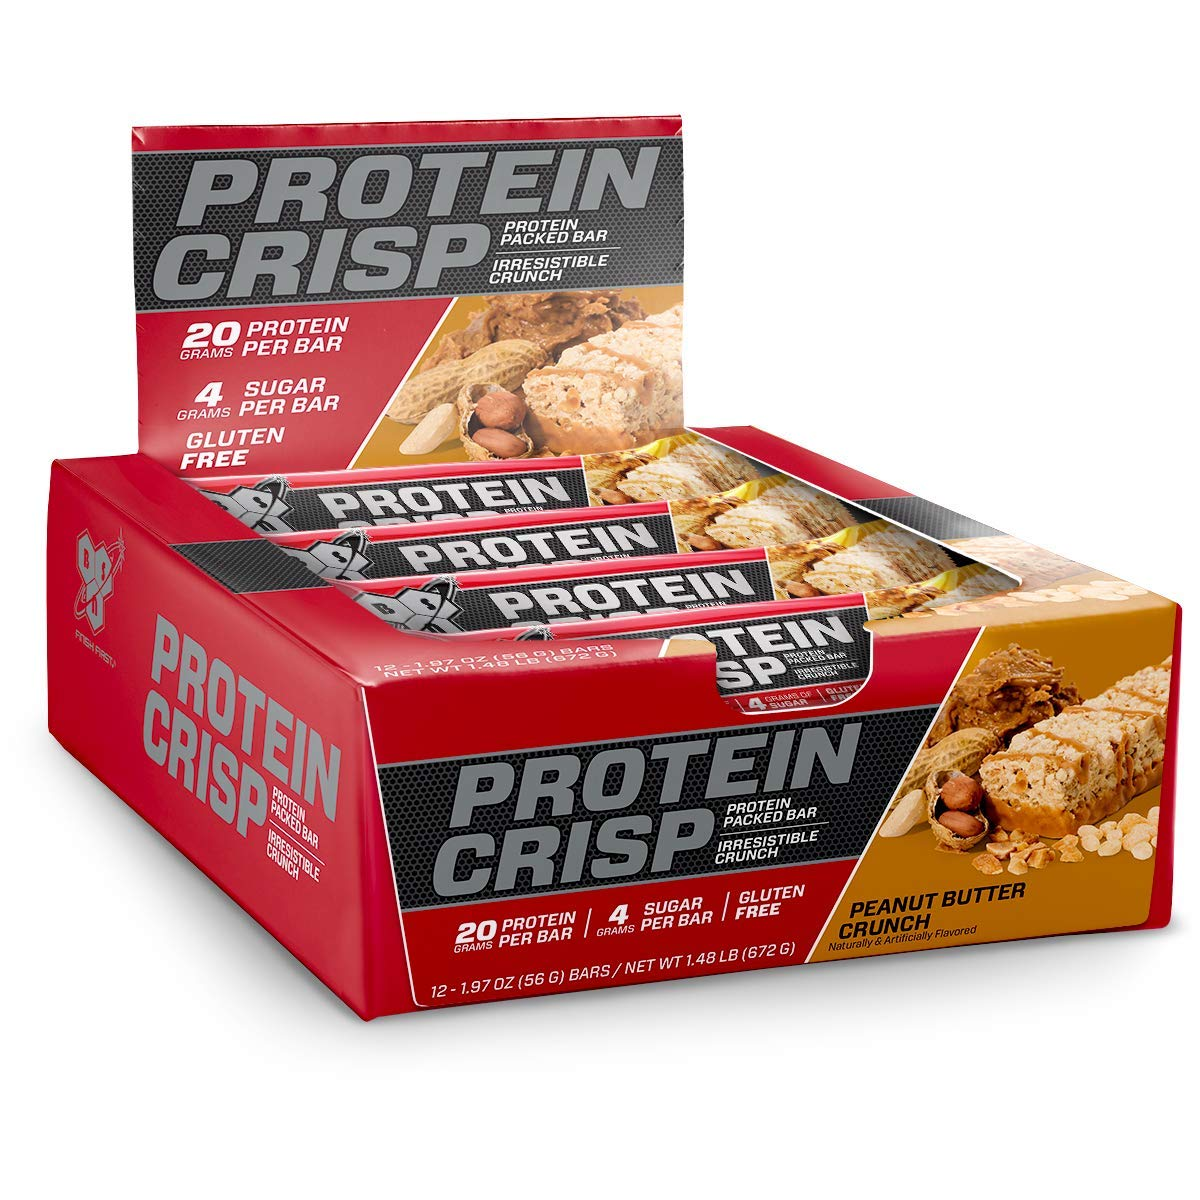 BSN Protein Crisp Bar by Syntha-6, Low Sugar Whey Protein Bar, 20g of Protein, Peanut Butter Crunch, 12 Count (Packaging may vary) by BSN